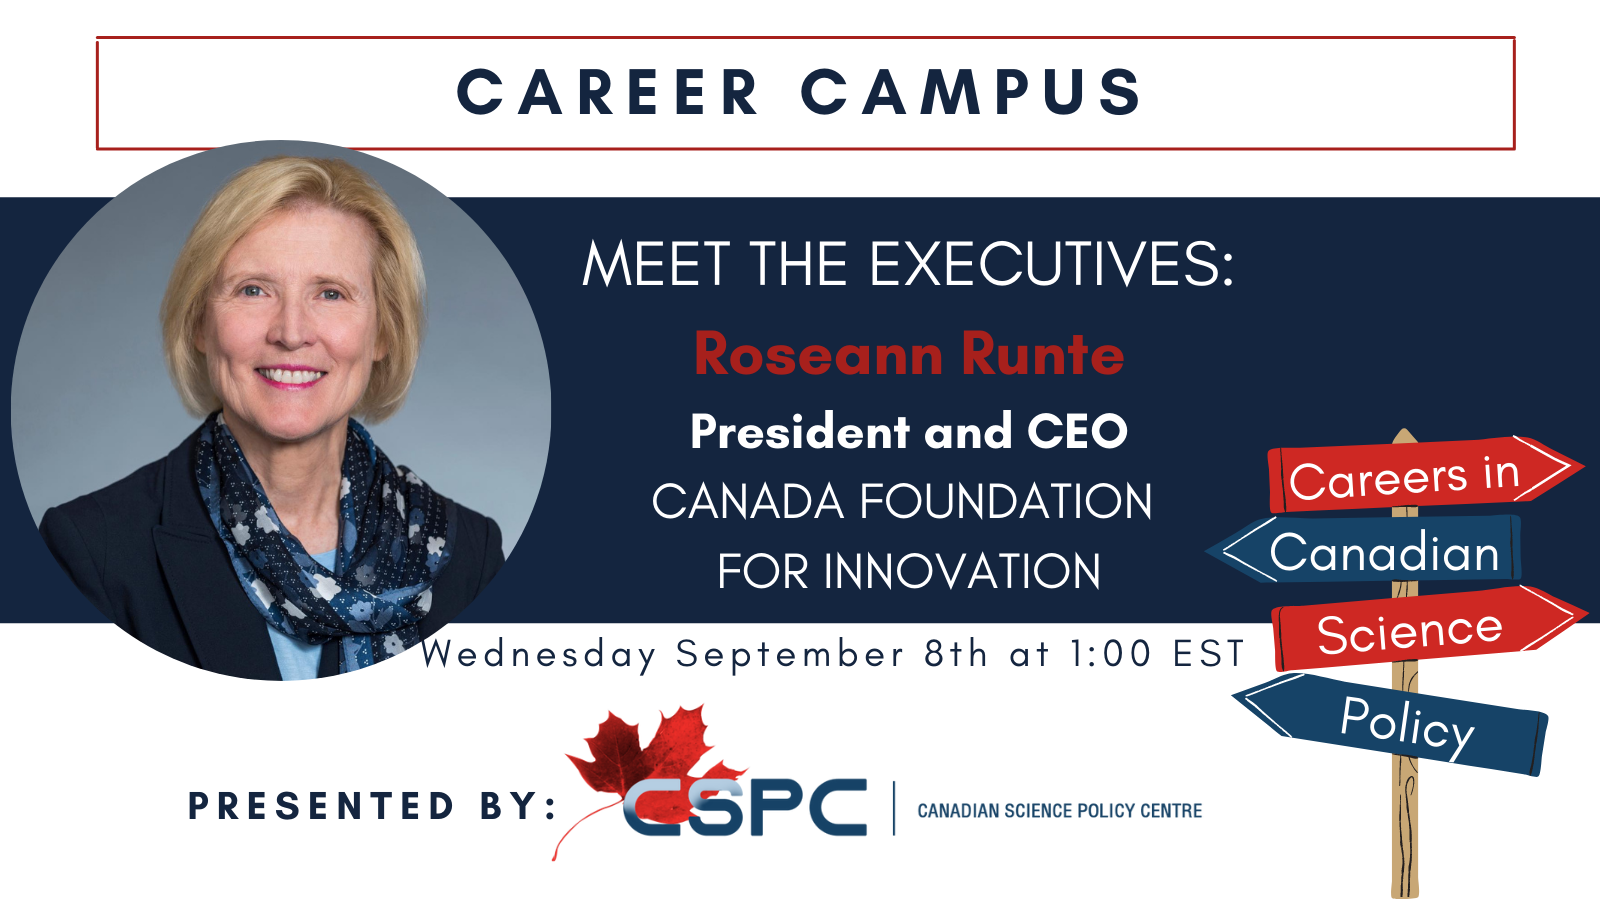 Banner for the Meet the Executives event with Rosann Runte, President and CEO of the Canada Foundation for Innovation